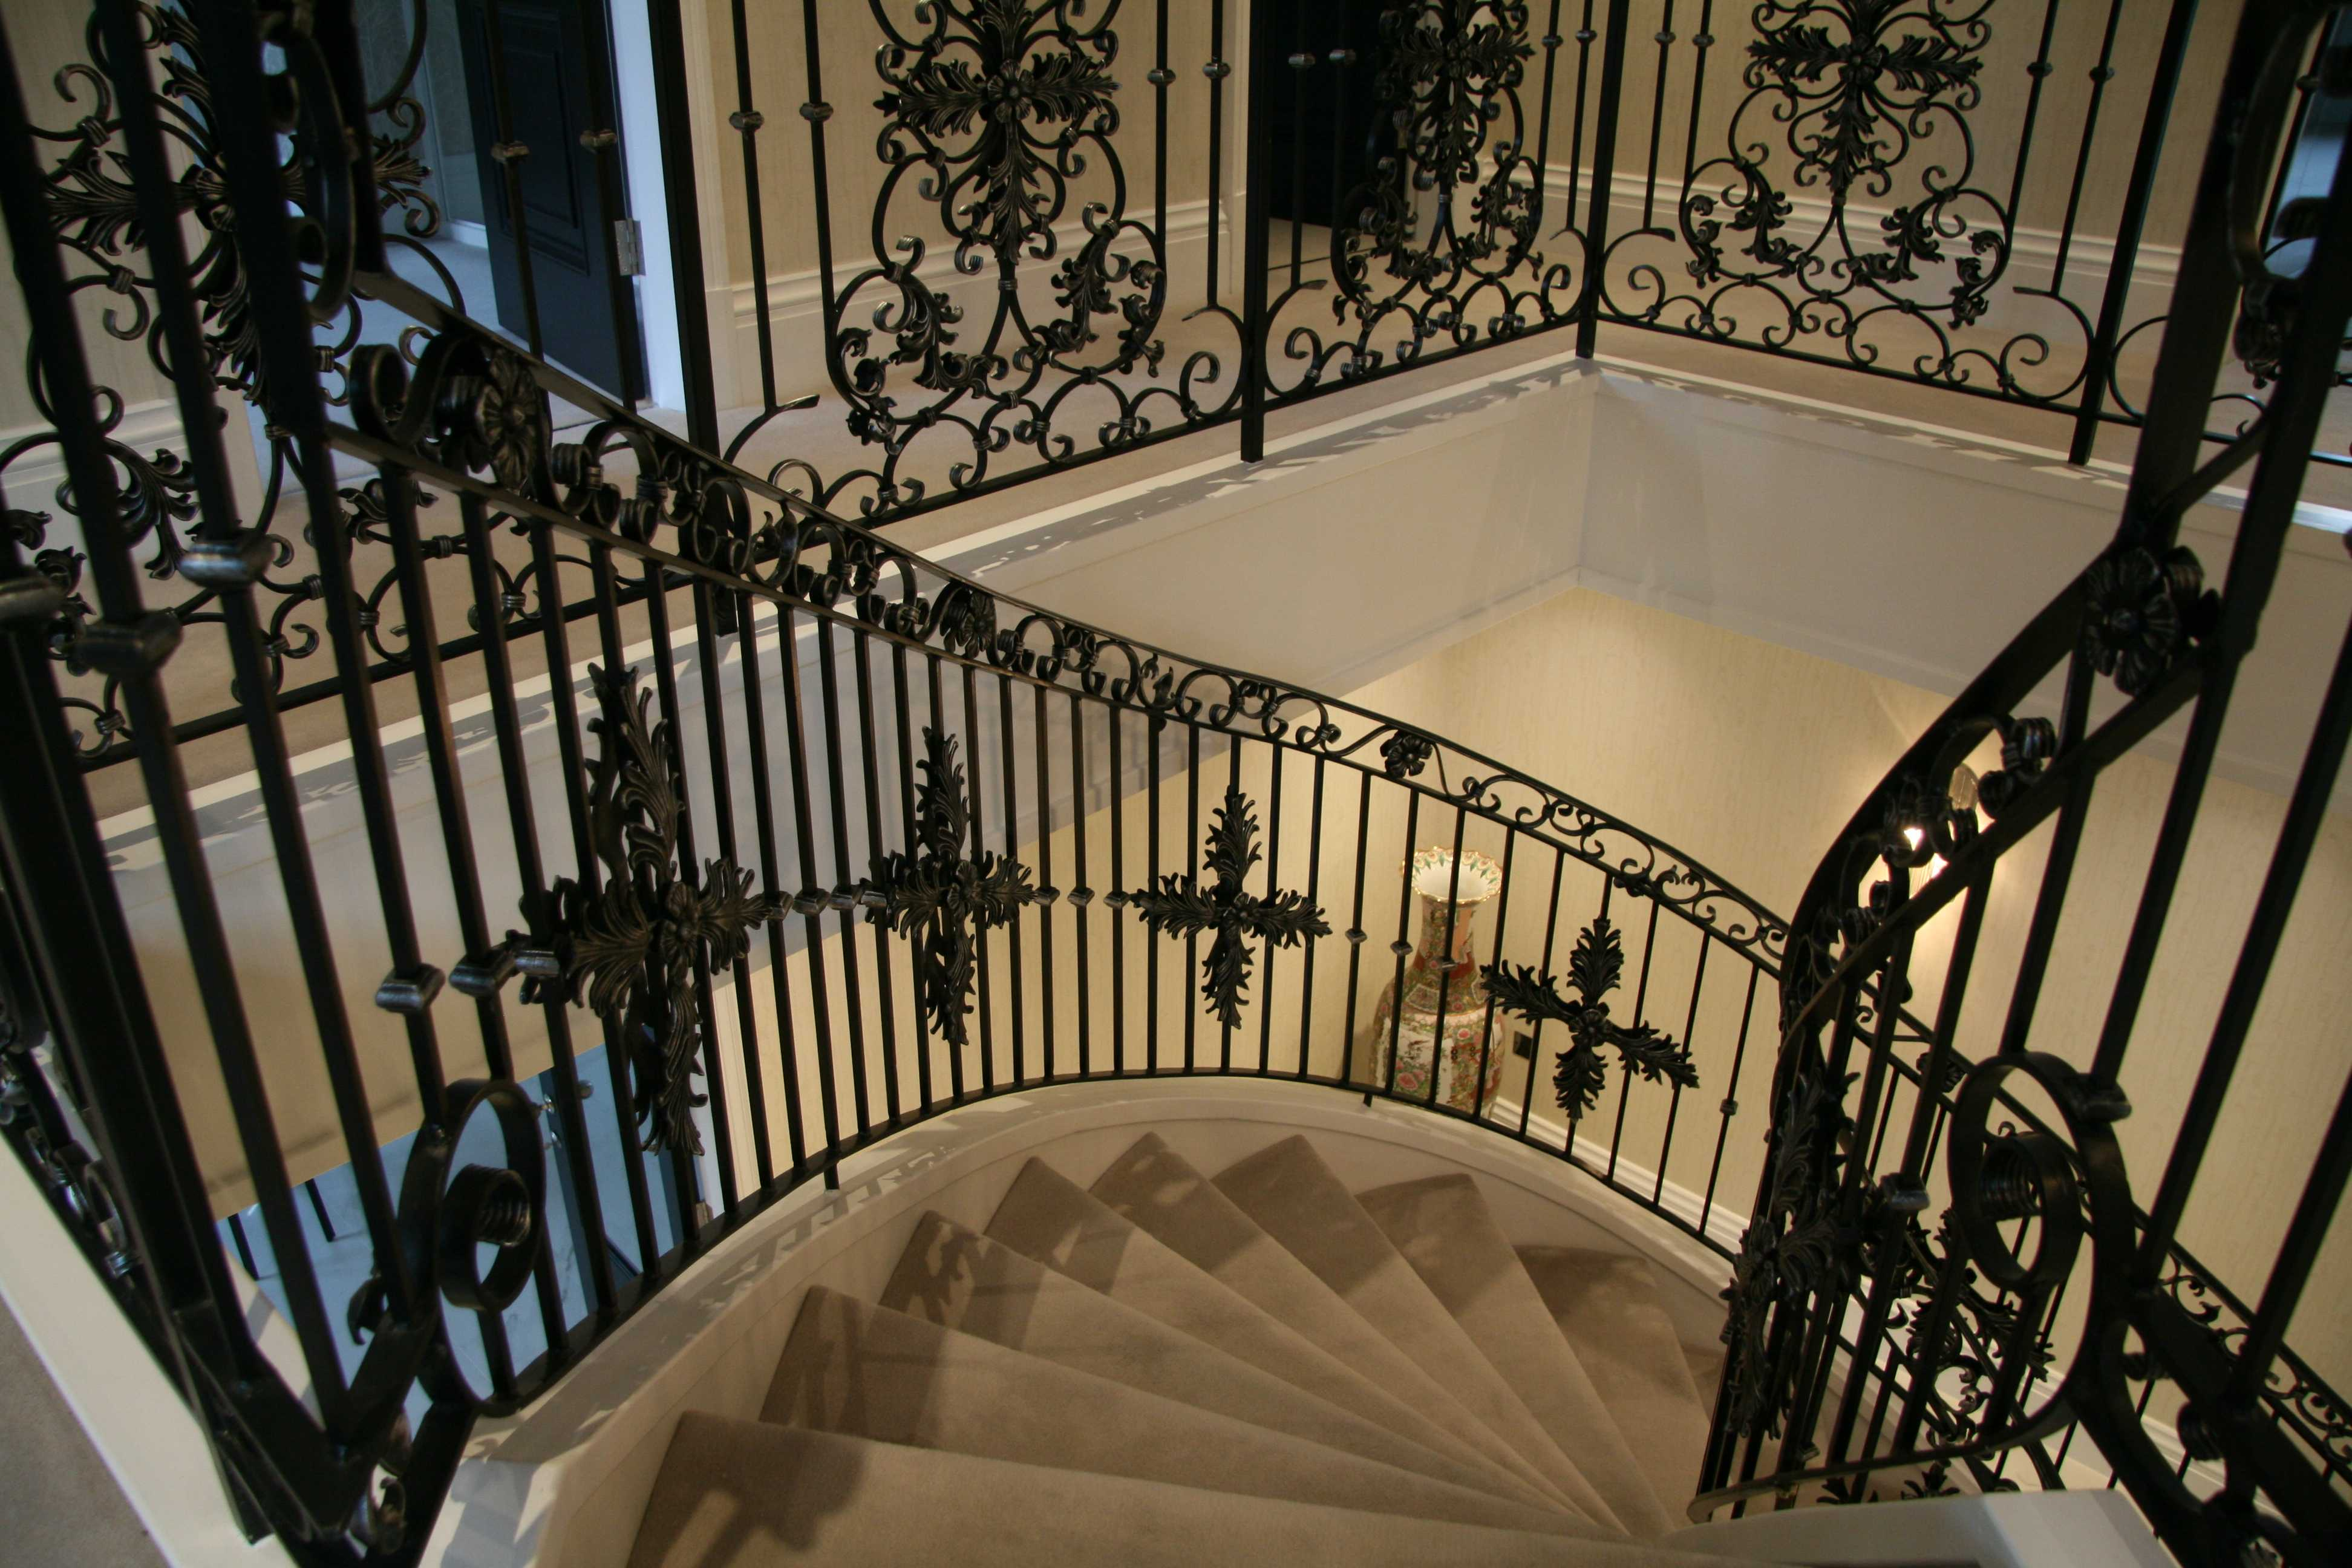 Modern metal stair railings interior bespoke staircases designs for sale–IOK-167